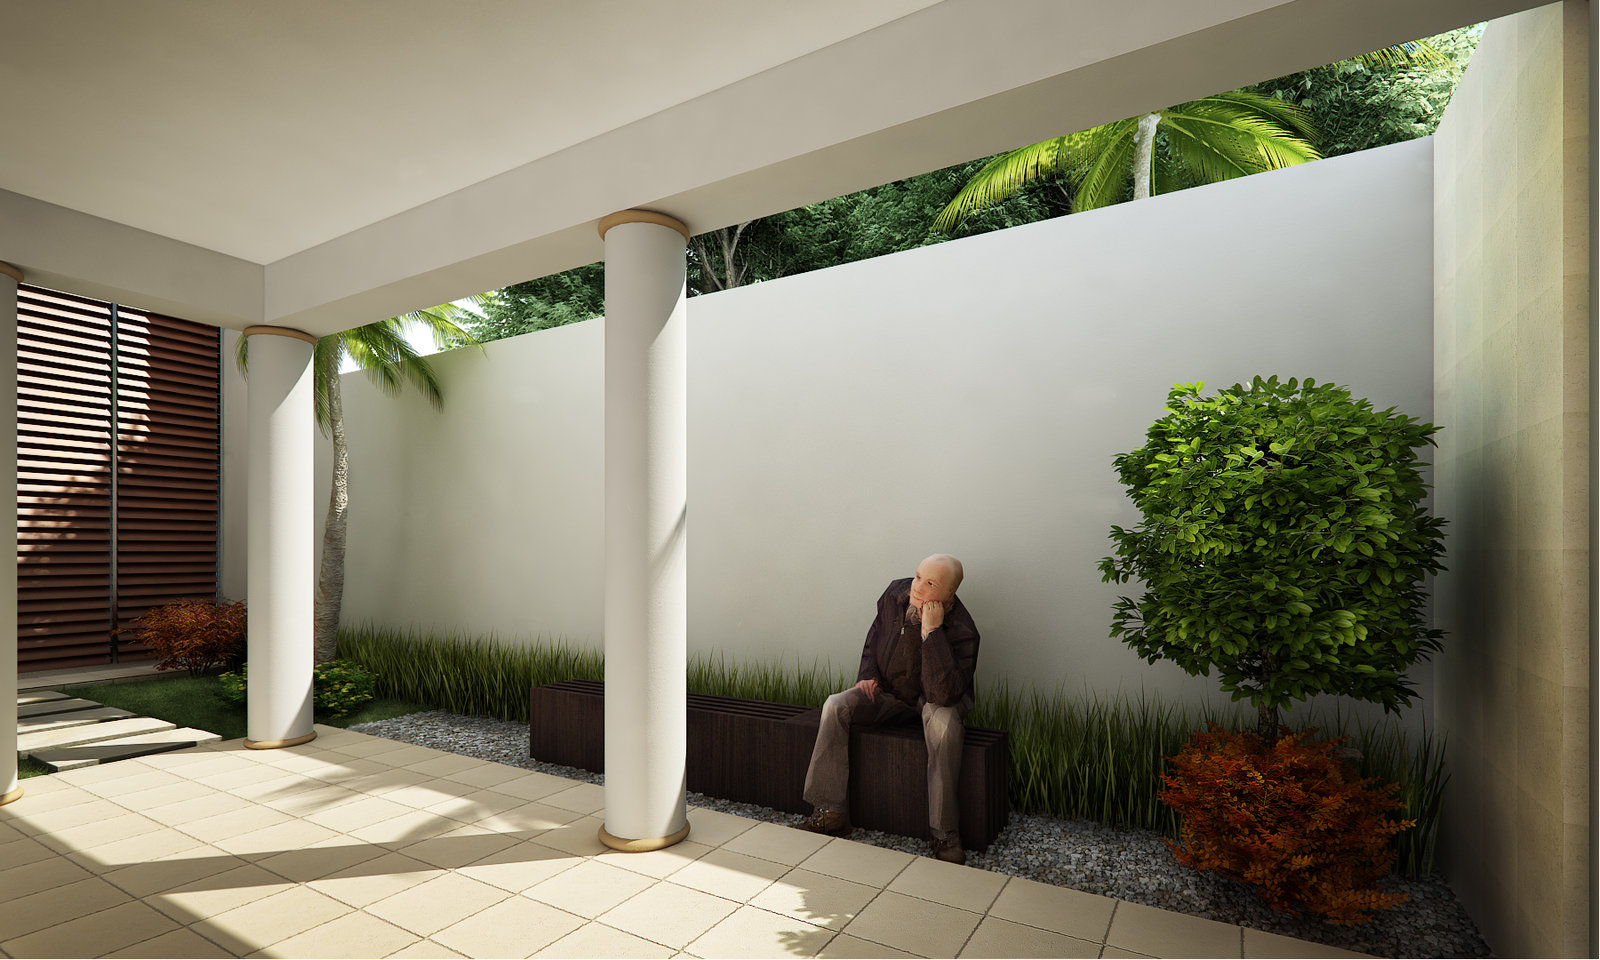 vargas tejeda architecture - Courtyard Design Ideas